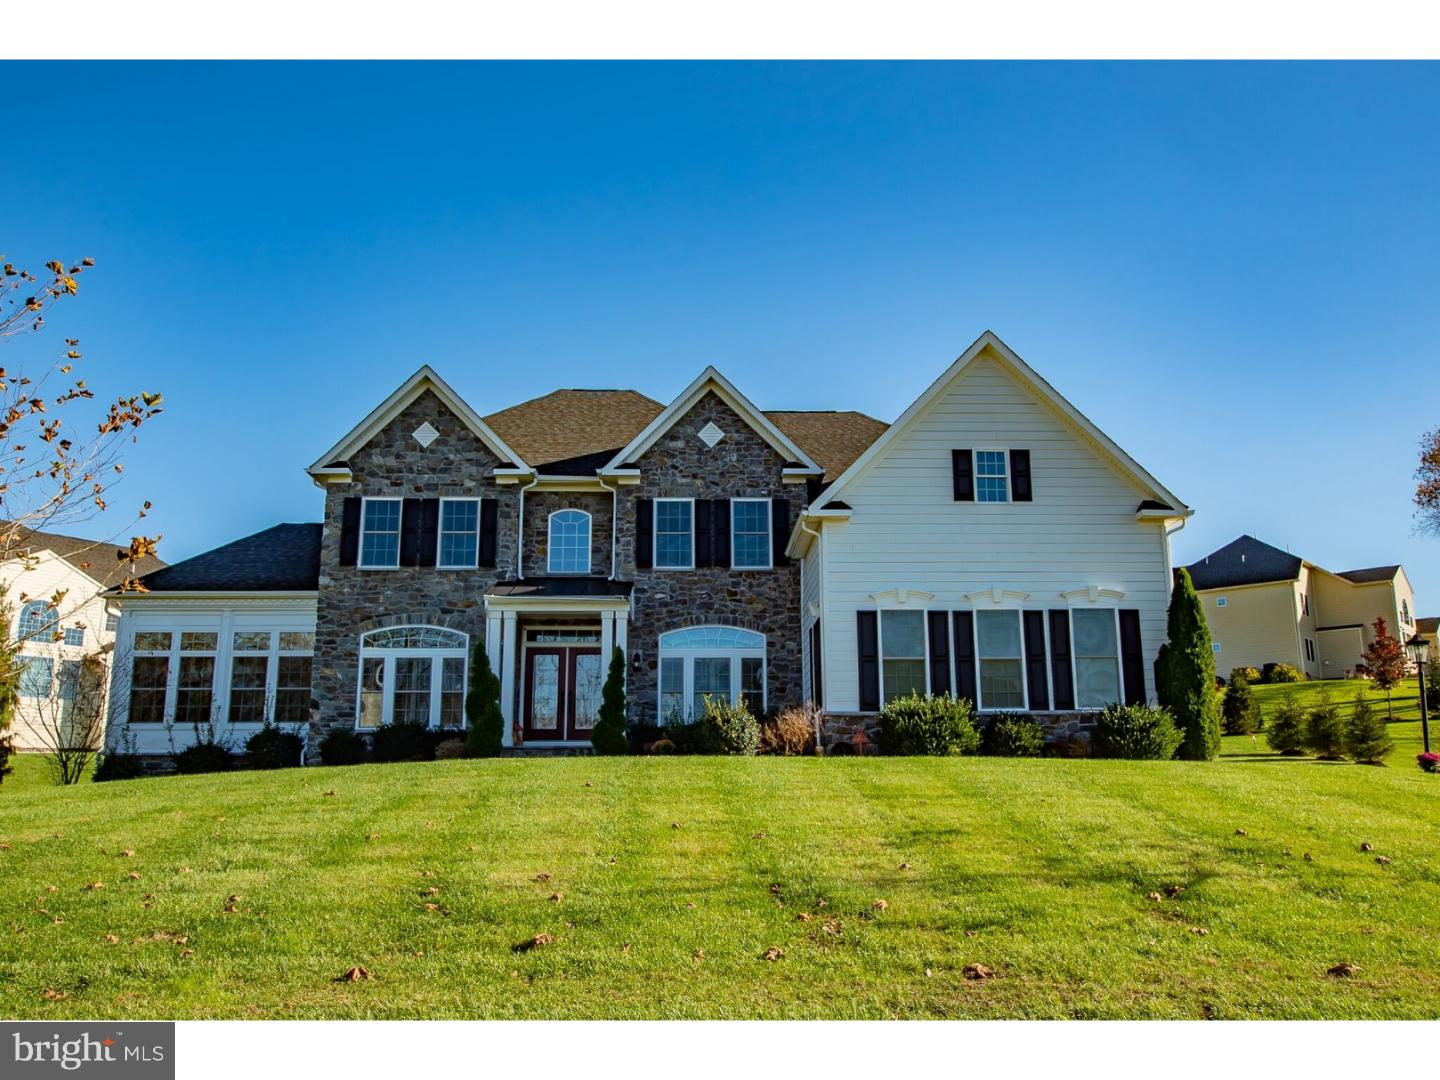 1100 JUDSON DRIVE, WEST CHESTER, PA 19380